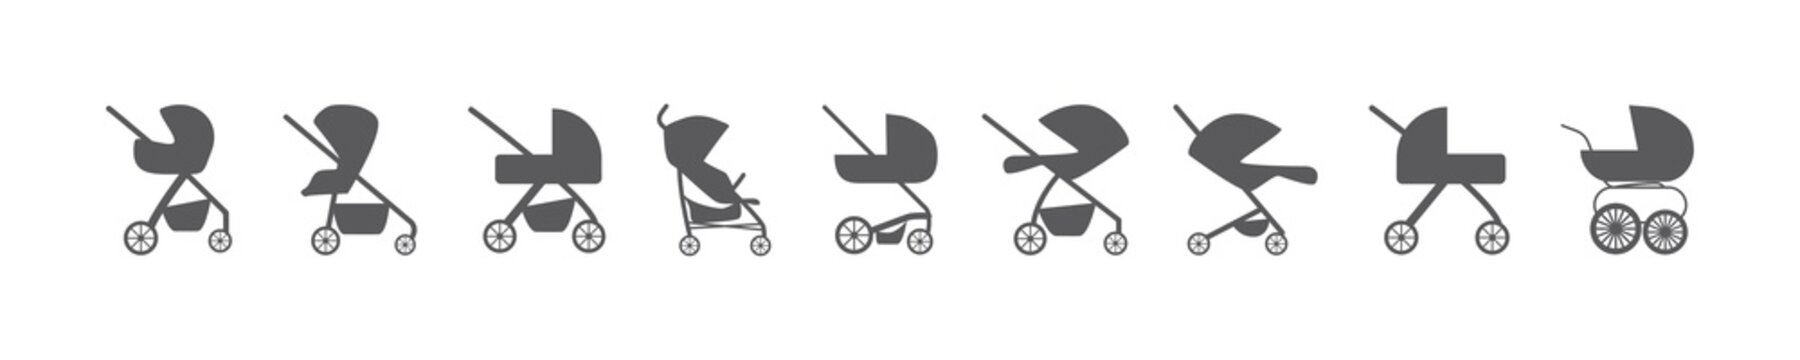 baby stroller isolated icon vector set pram buggy carriage illustration on white background